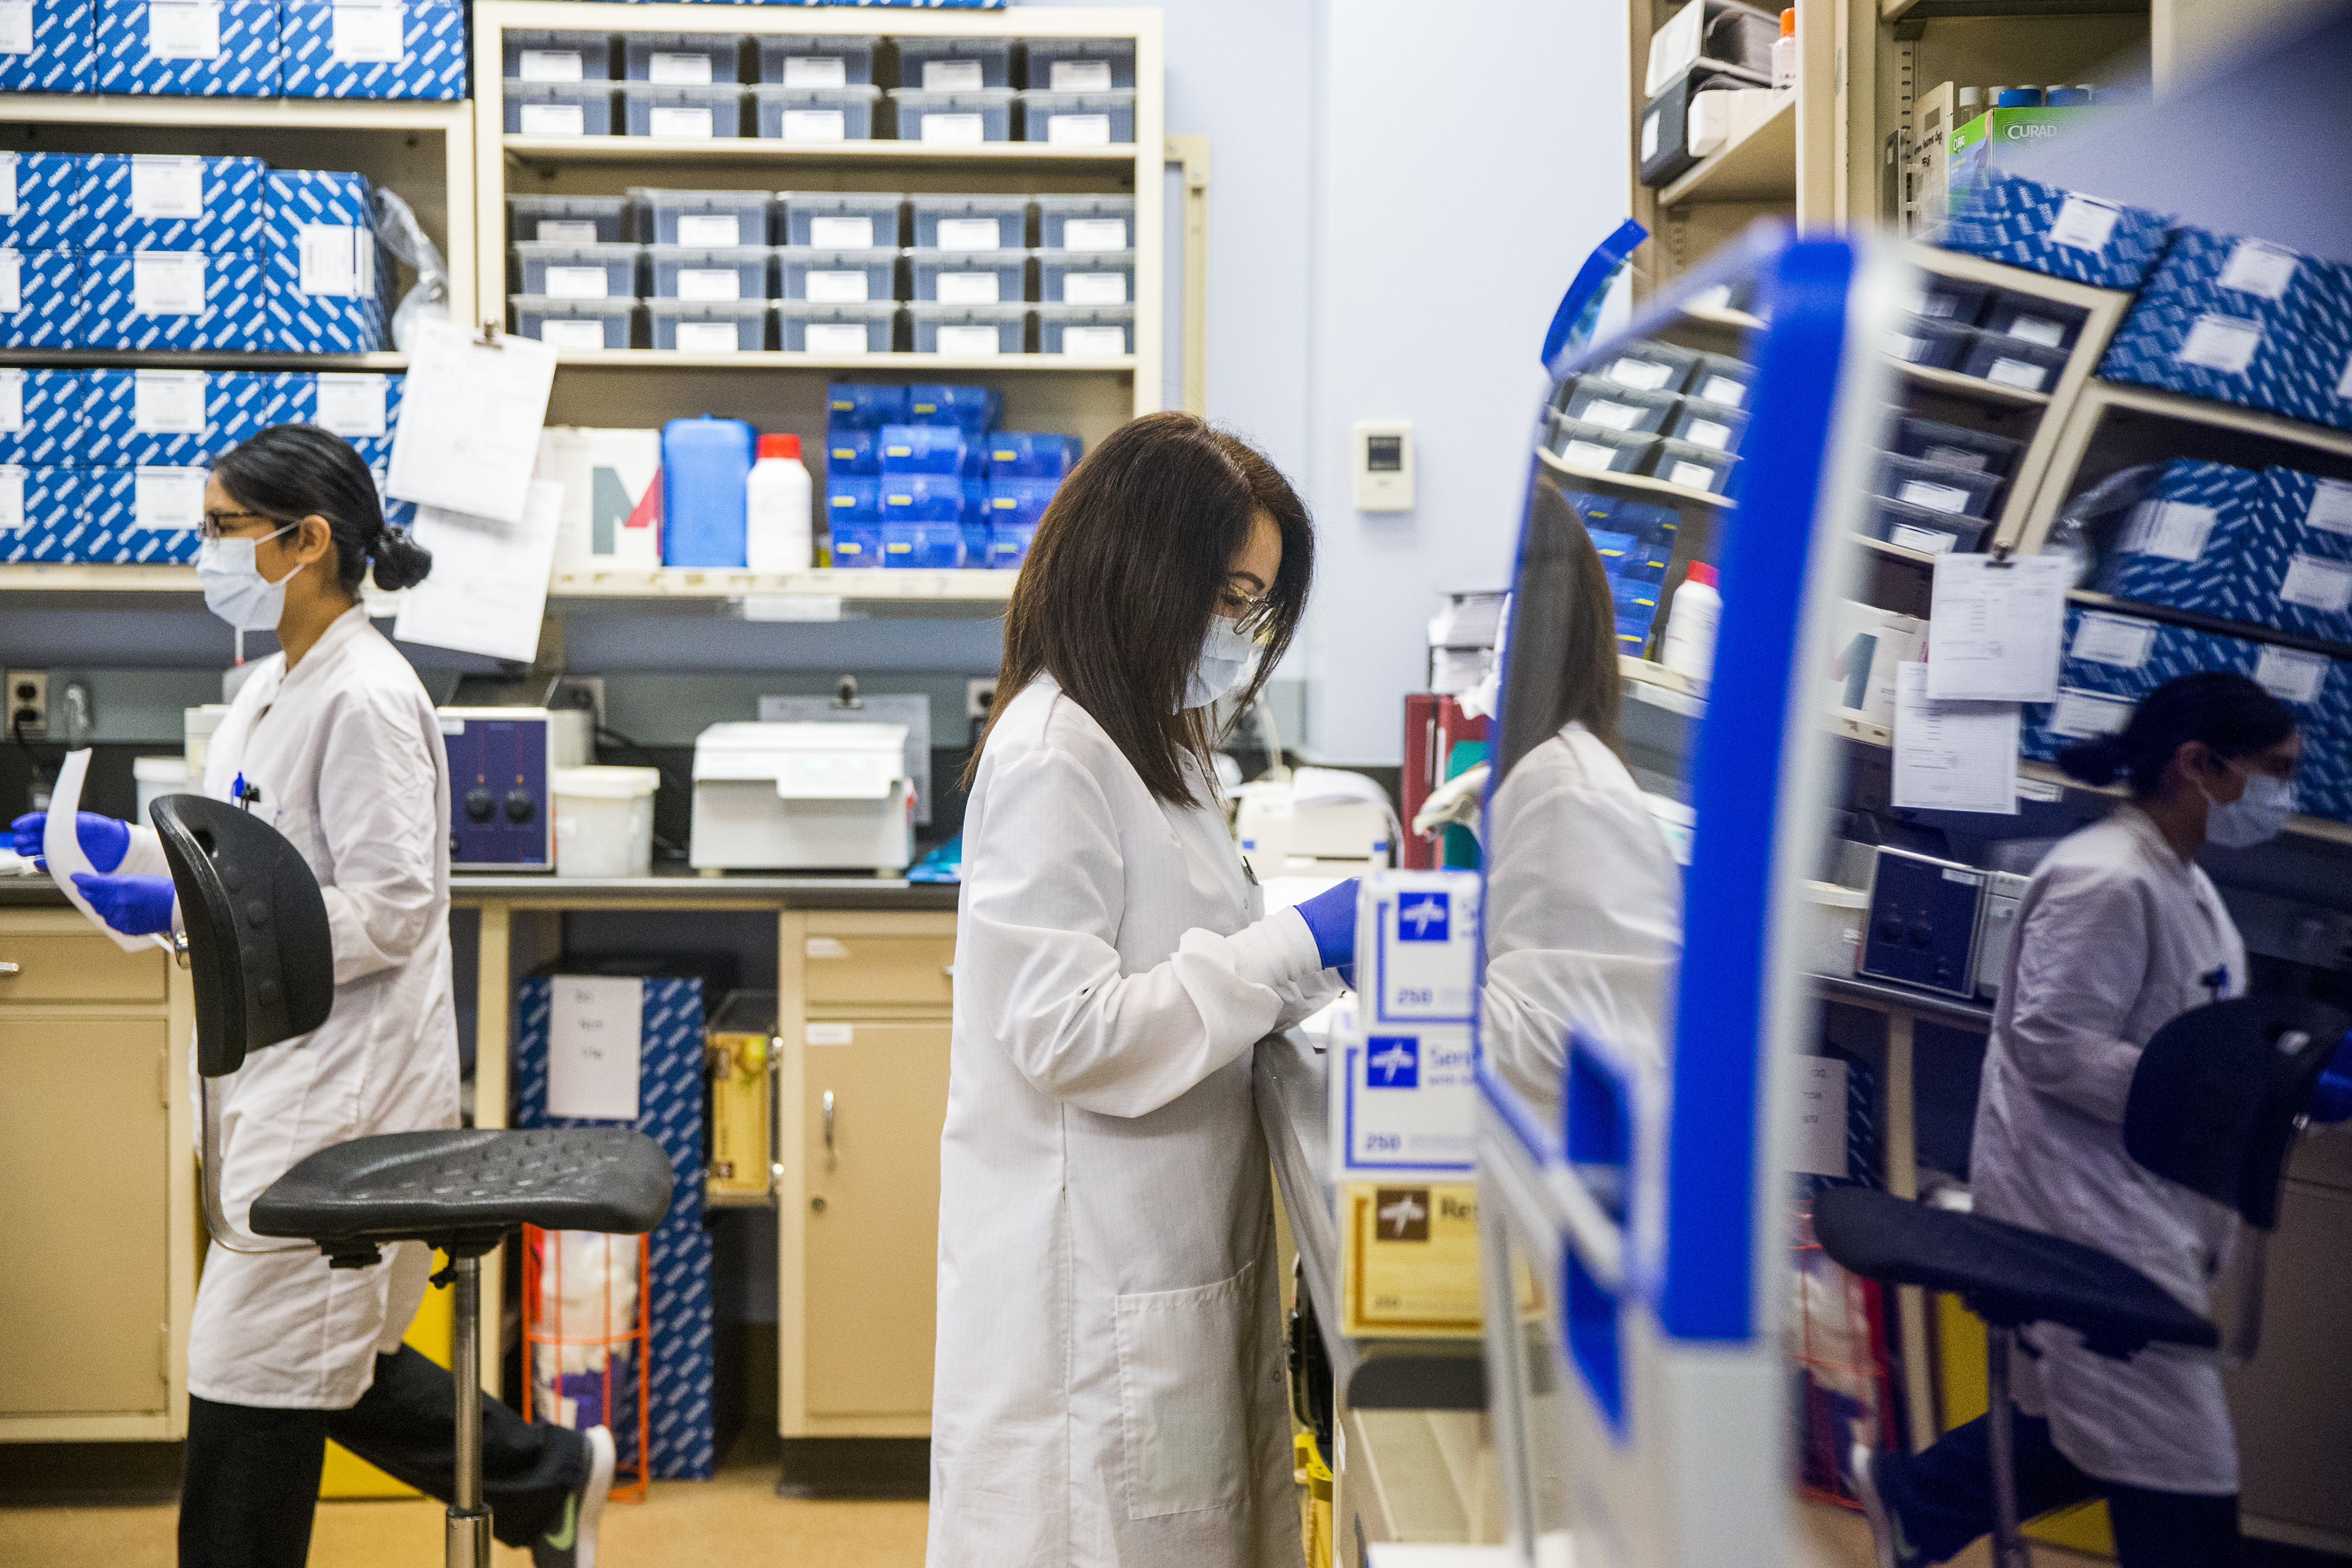 The workload has doubled for staff at the microbiology lab at the Health Sciences Centre during the COVID-19 pandemic. (Mikaela MacKenzie/Winnipeg Free Press/Canadian Press)